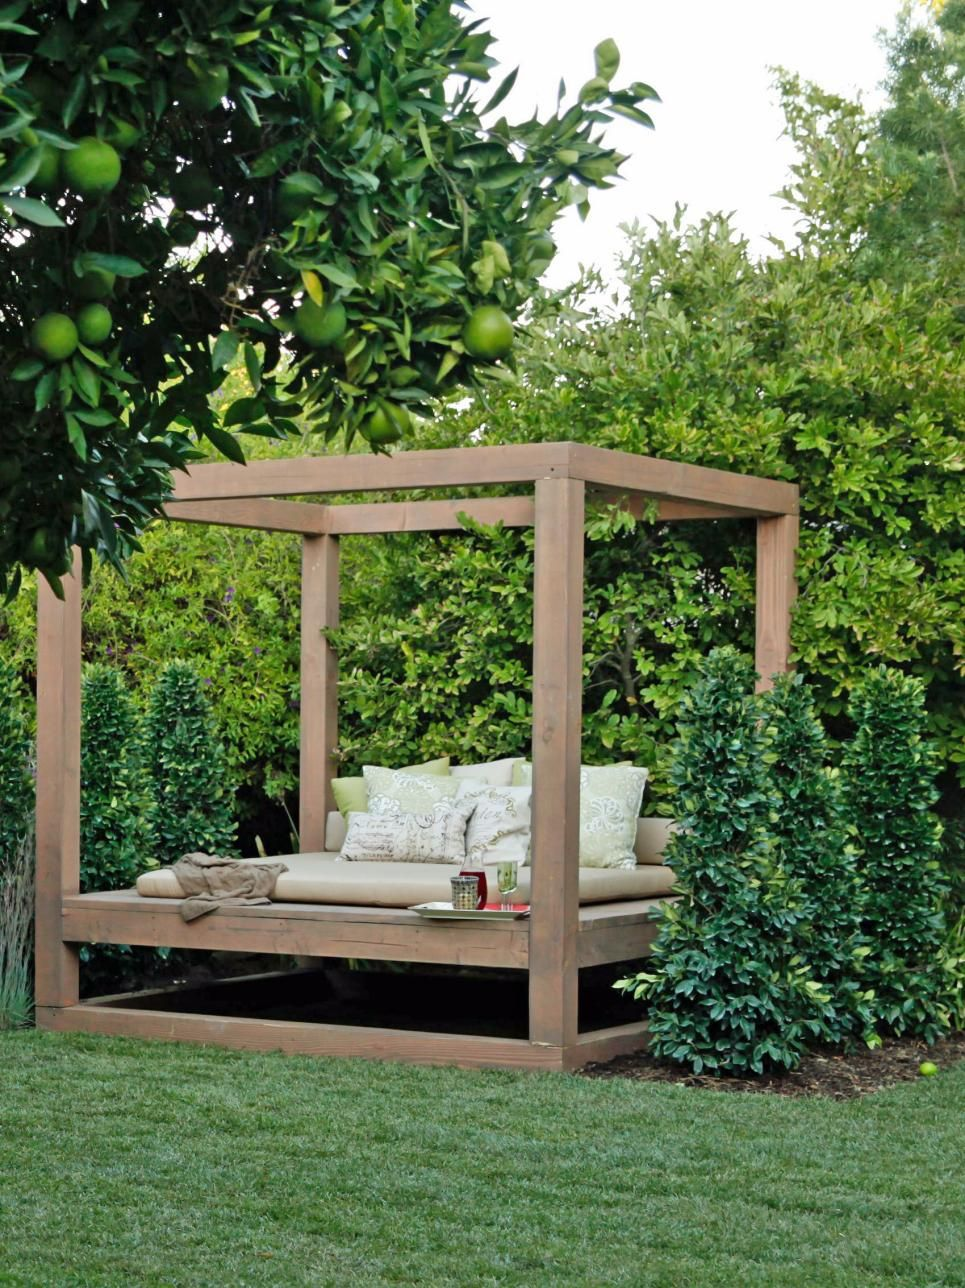 Outdoor Lounging Spaces Daybeds Hammocks Canopies And More Outdoor Beds Outdoor Furniture Design Outdoor Rooms